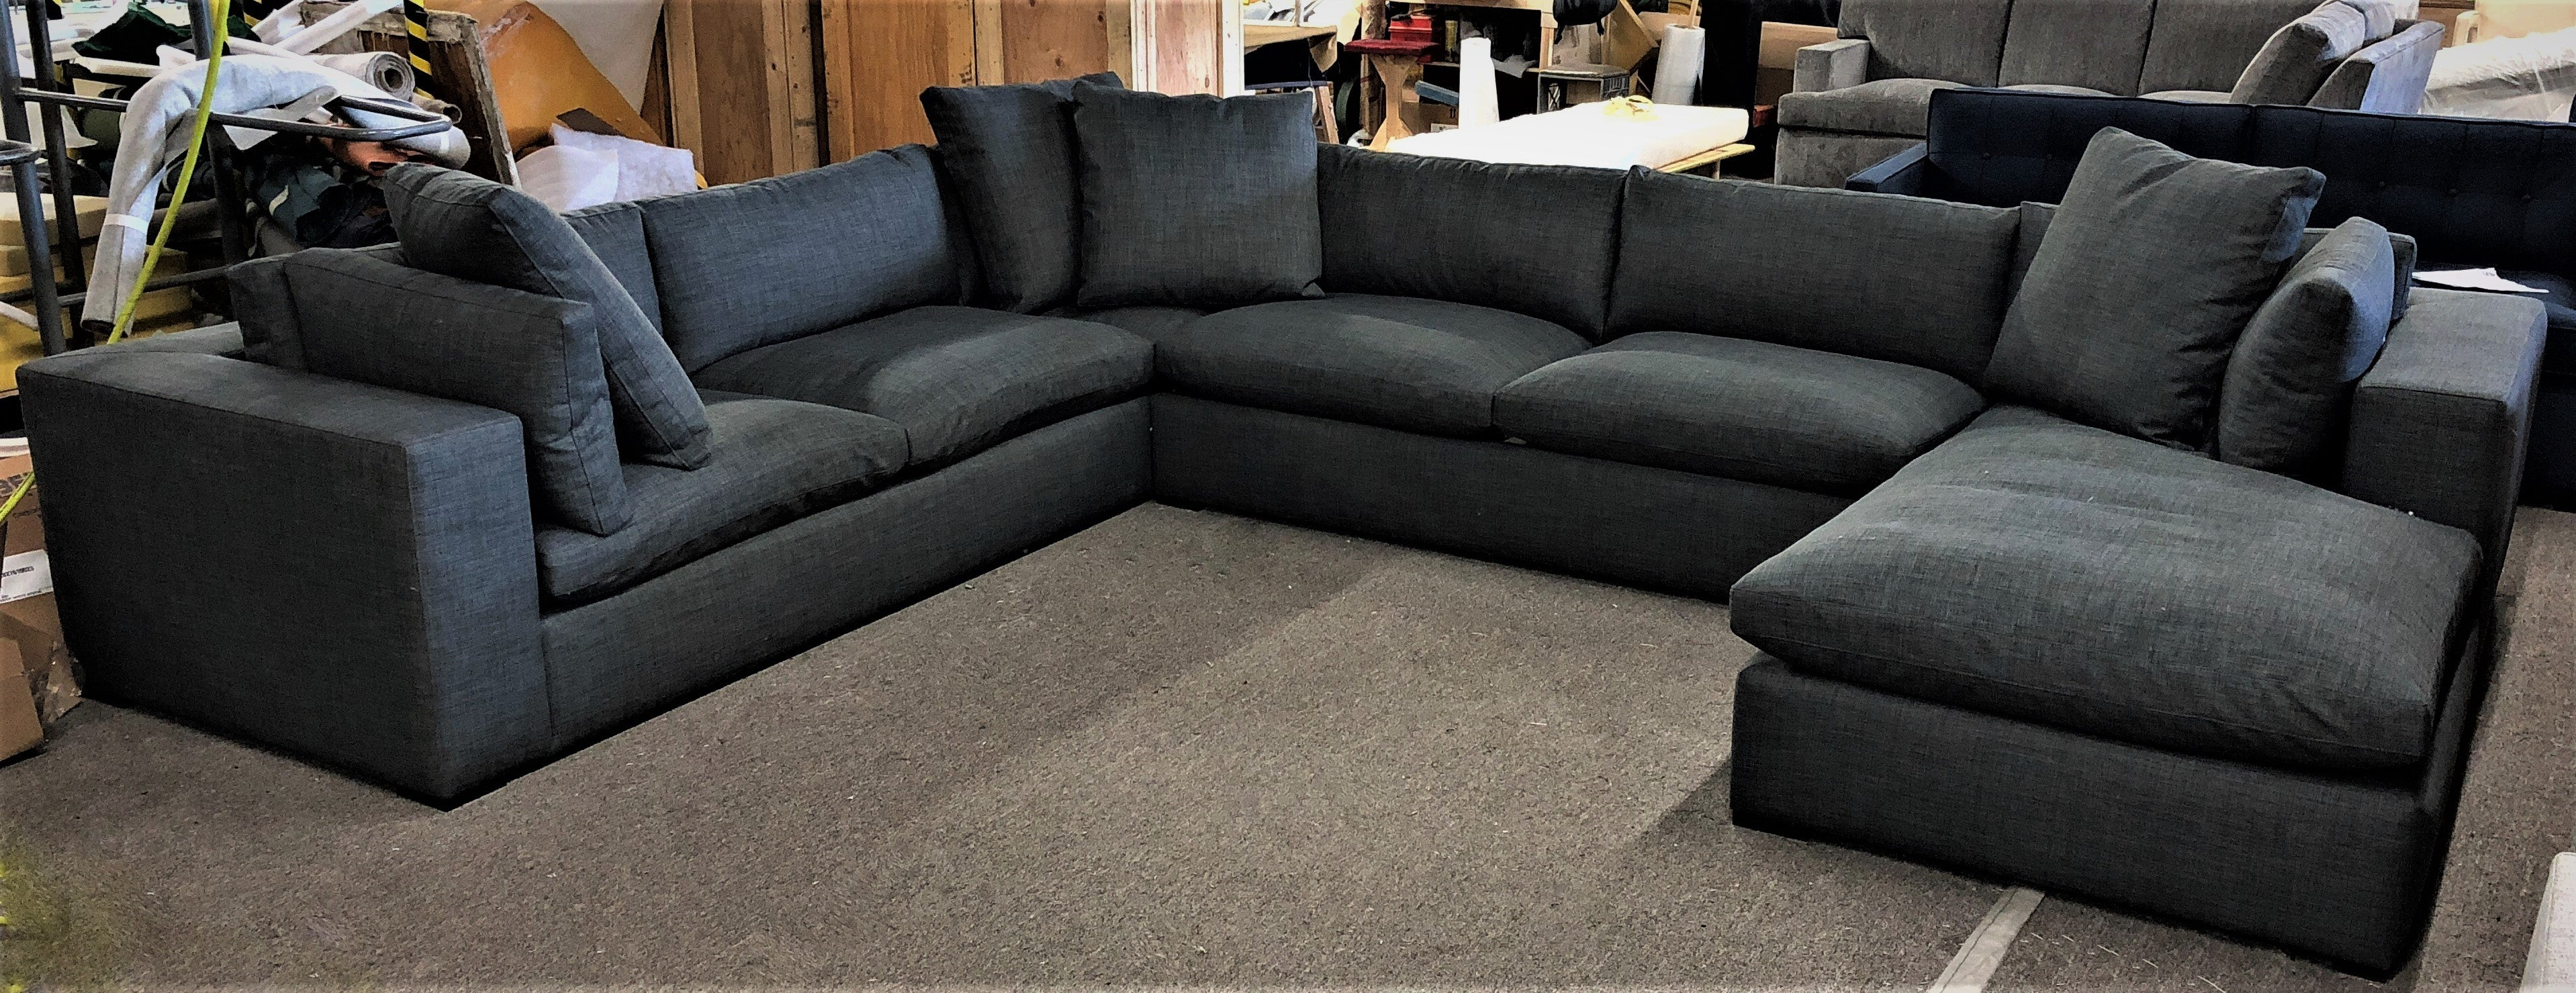 Claudia L shaped sectional with chaise.